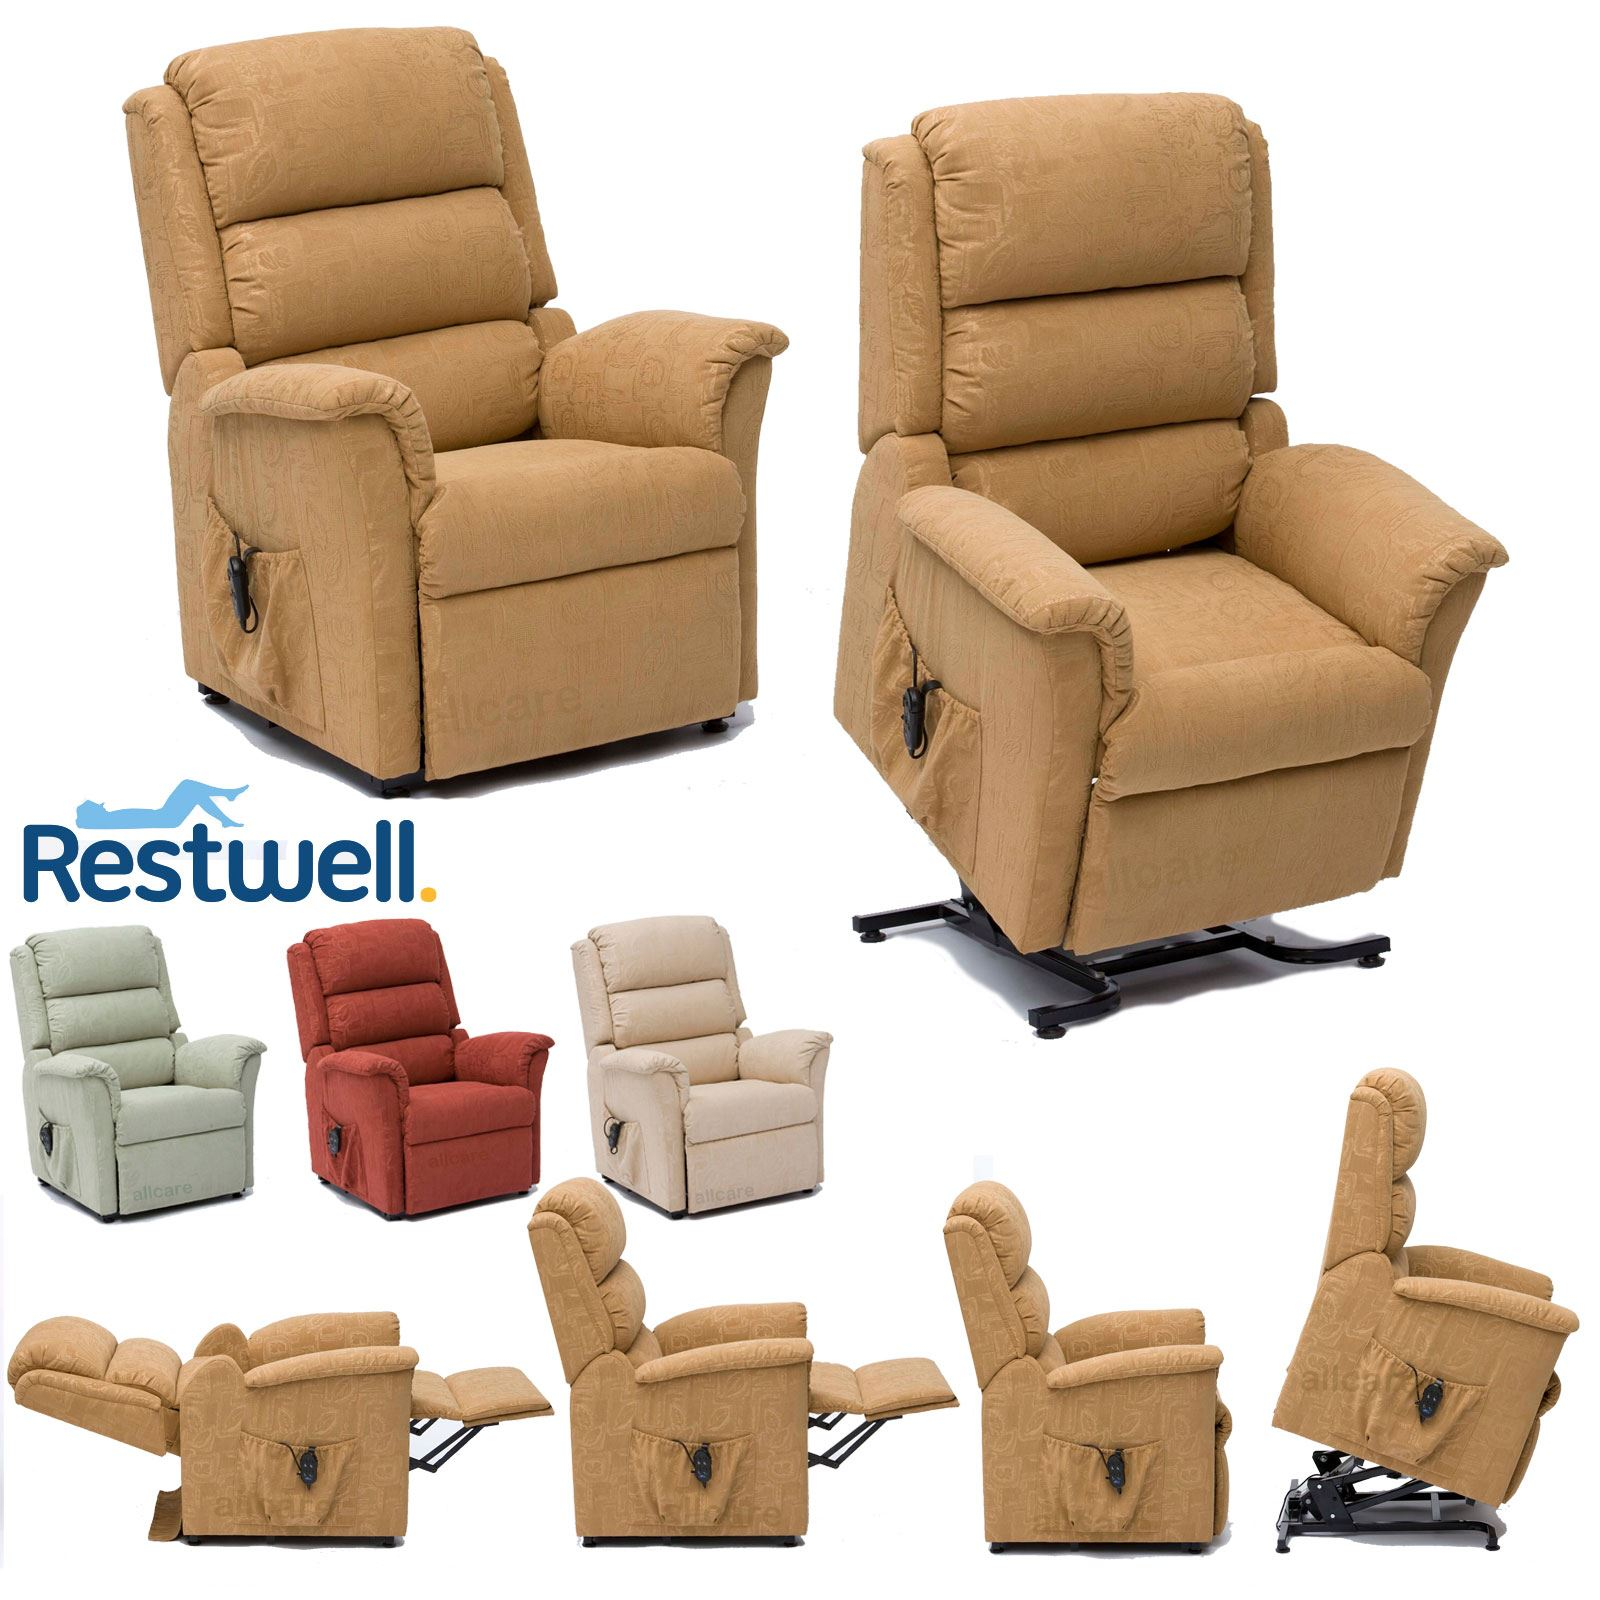 Fabulous Details About Restwell Nevada Fabric Electric Riser Recliner Chair Dual Motor Mobility Lift Ocoug Best Dining Table And Chair Ideas Images Ocougorg